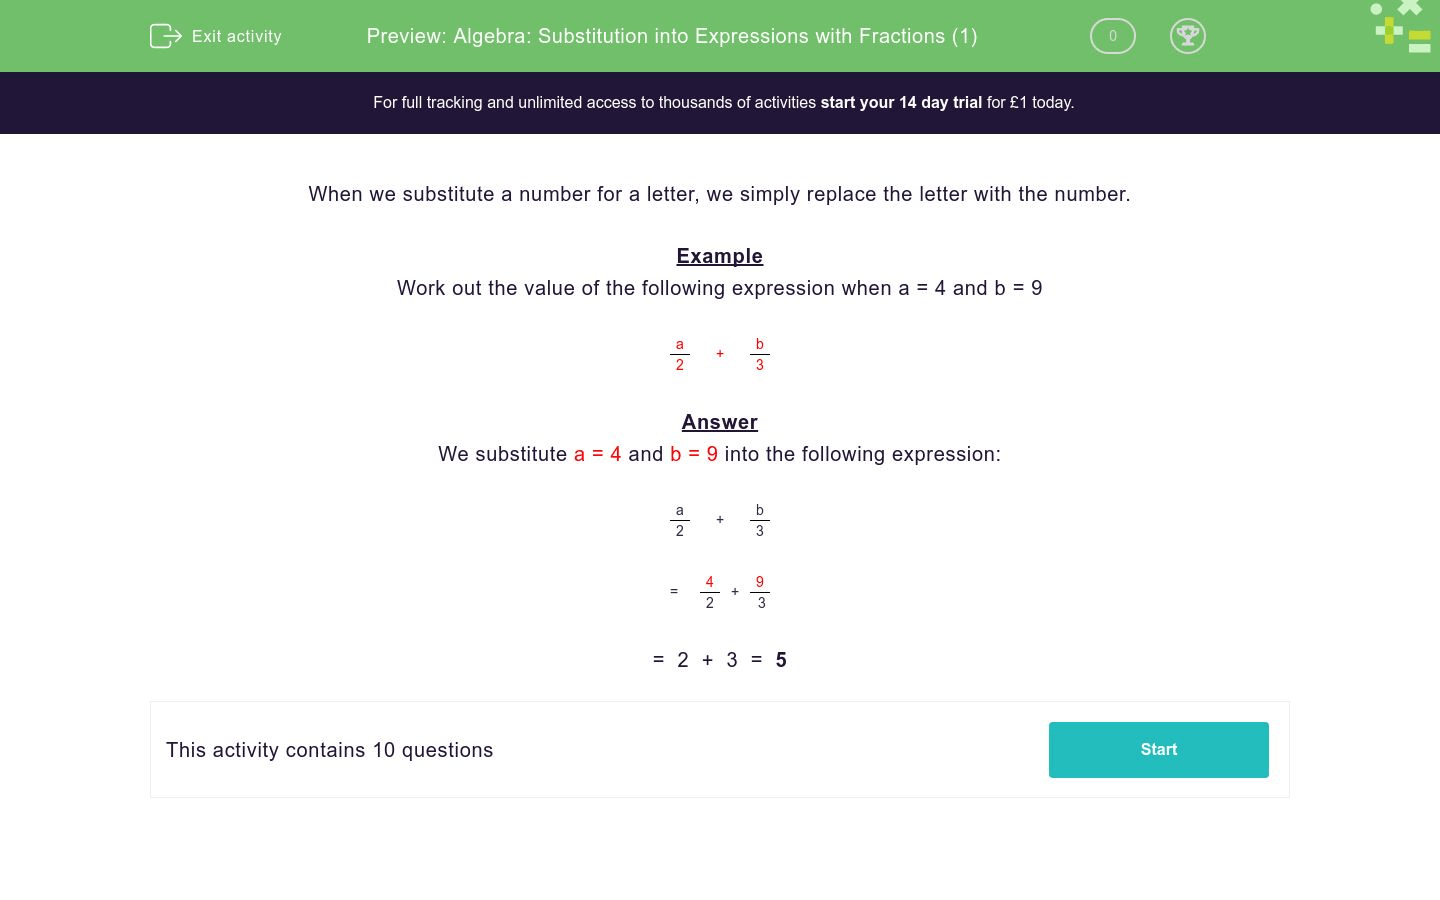 Algebra Substitution Into Expressions With Fractions 1